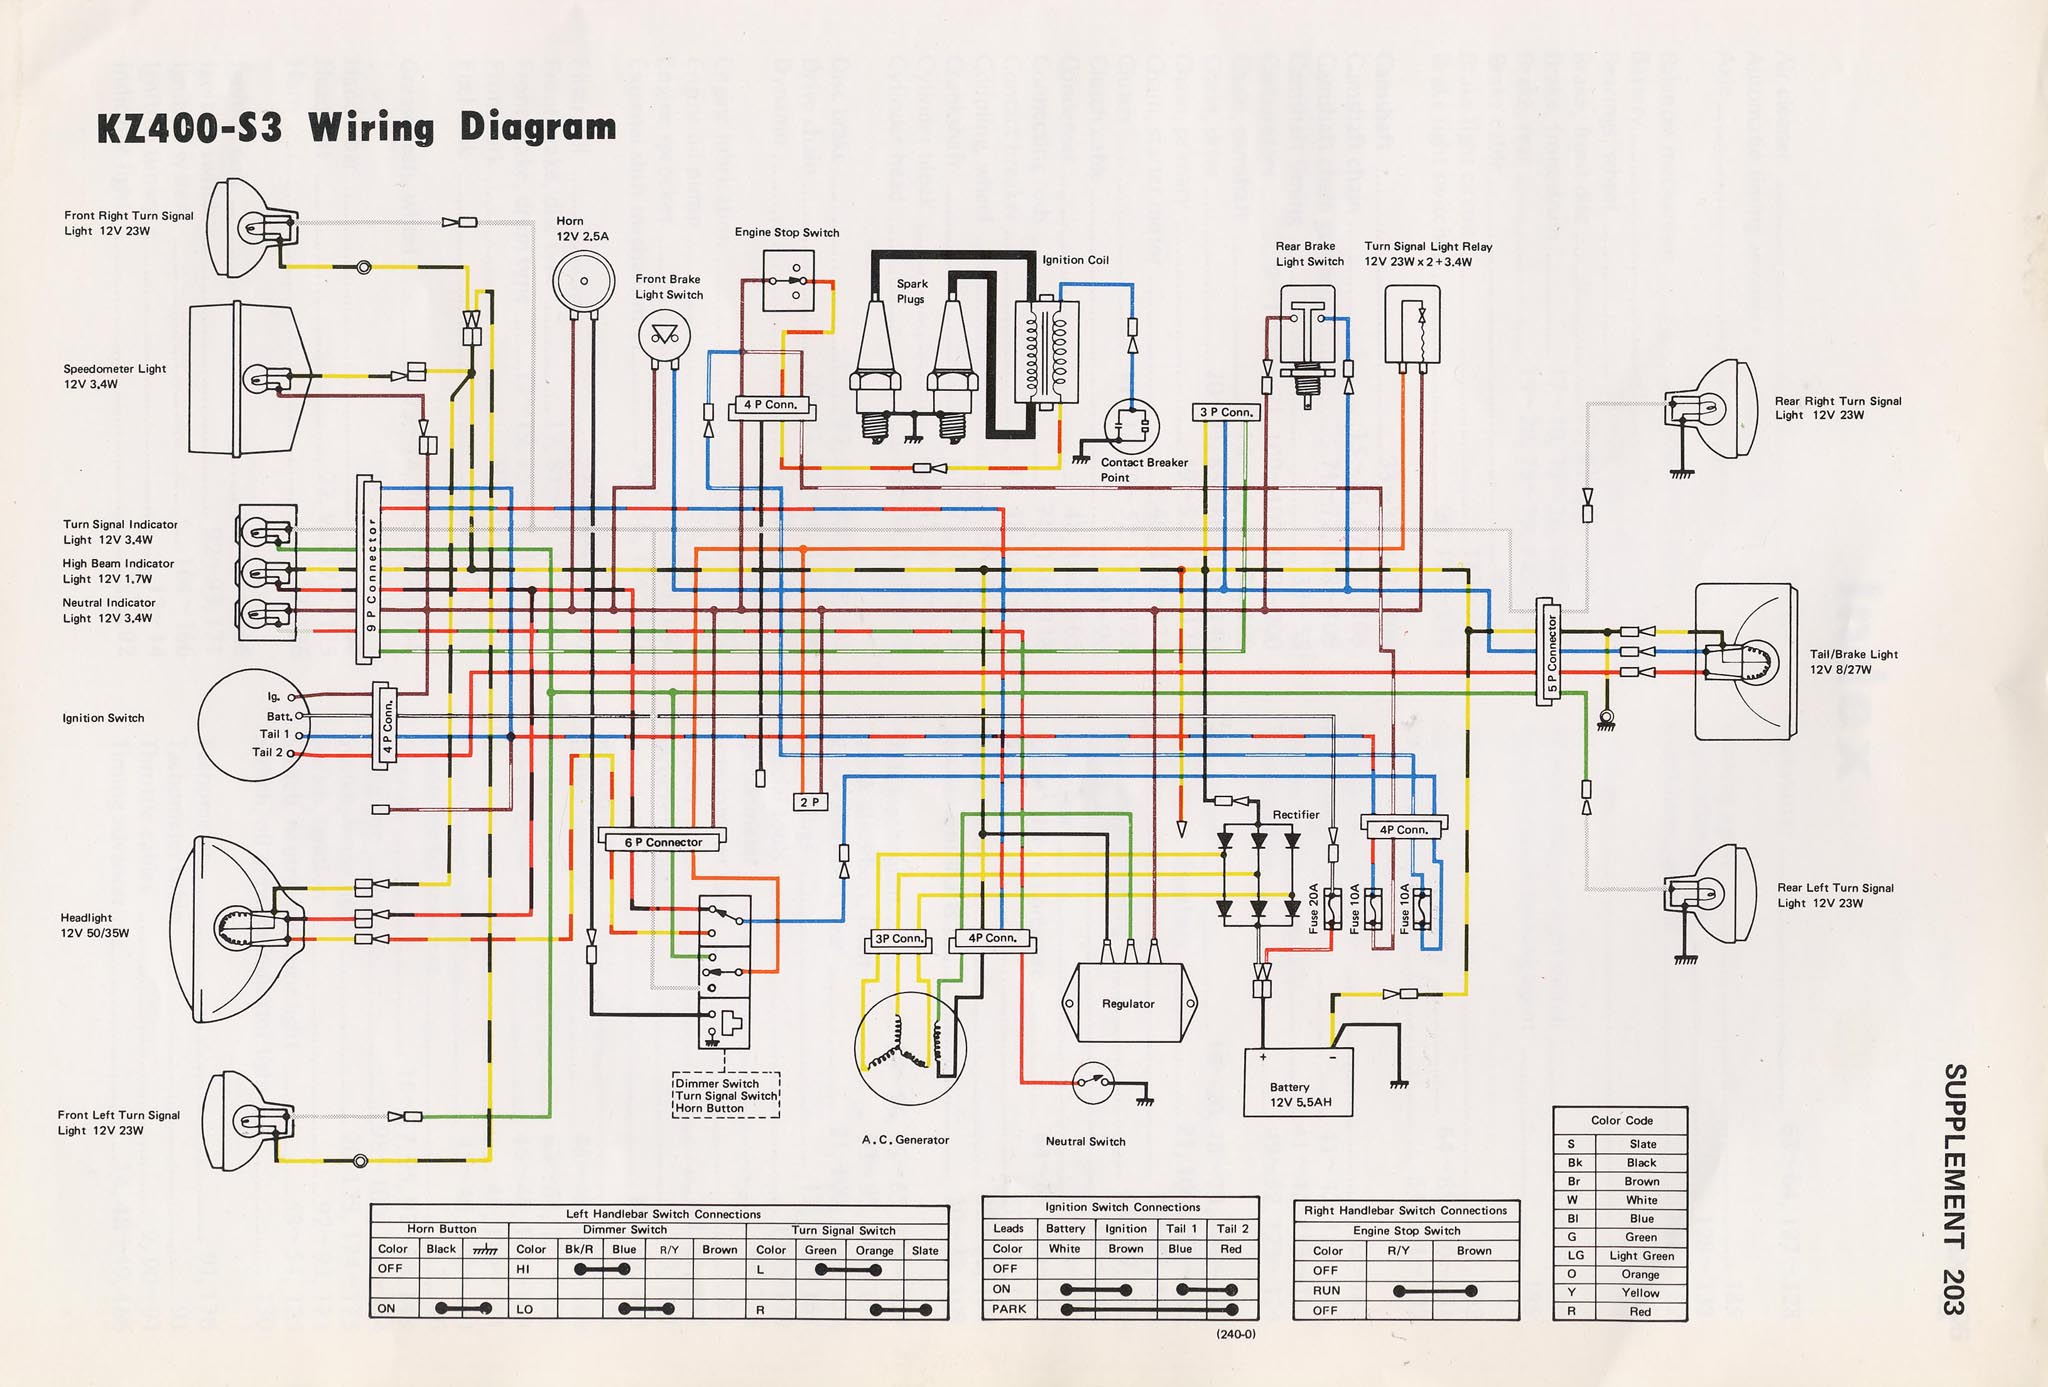 2005 Z400 Wiring Diagram | Wiring Diagram Haynes Wiring Diagram Chevy Colorado on